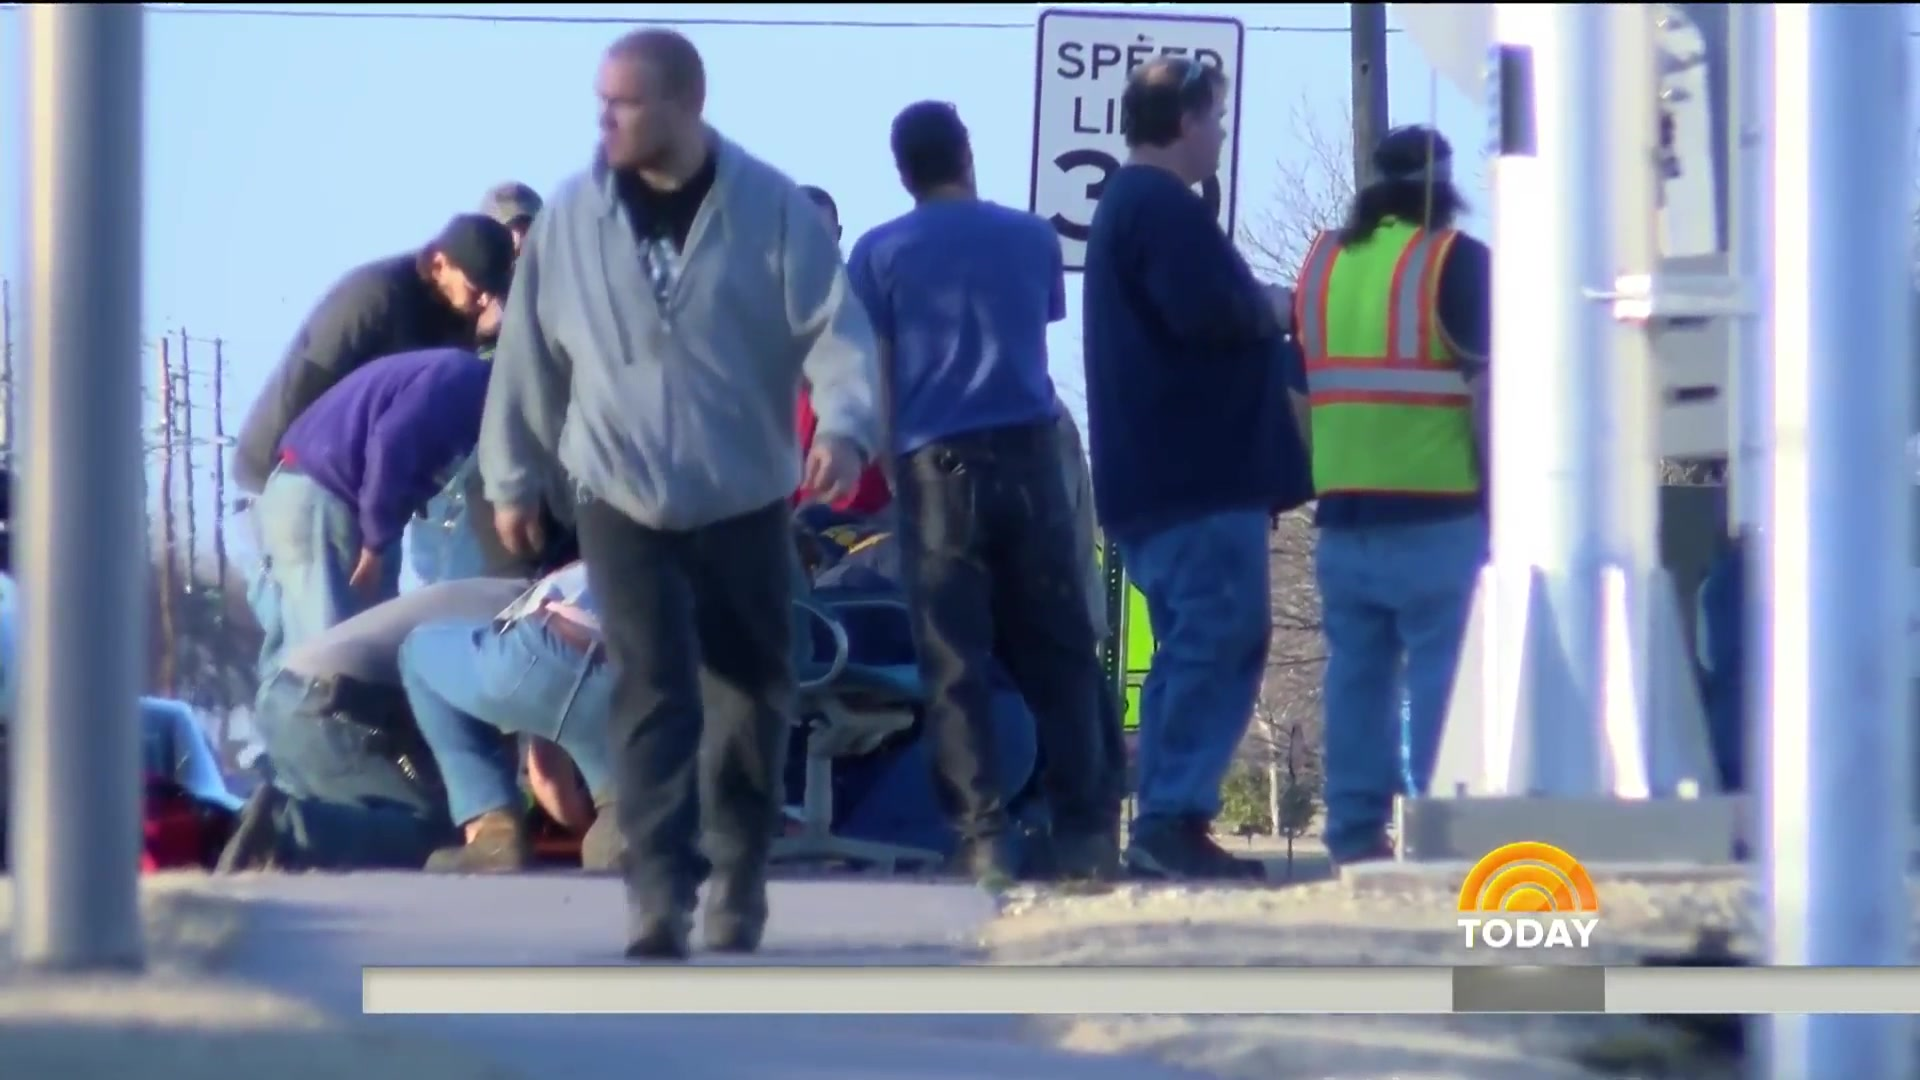 4 Killed, 14 Injured After Workplace Shooting Spree in Kansas